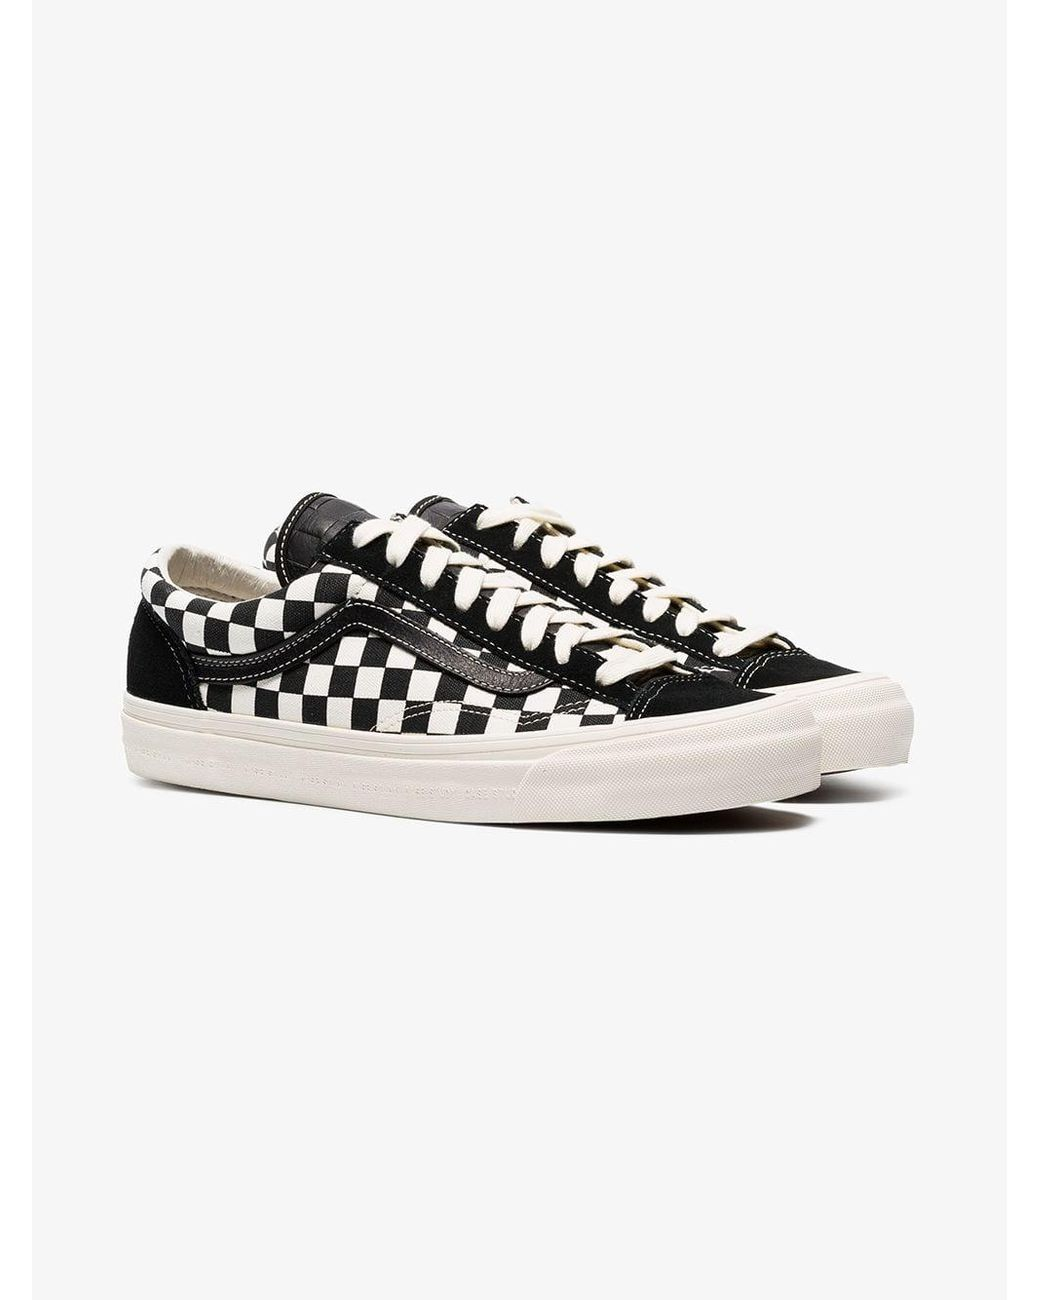 5f75e86bf2 Lyst - Vans Vault X Modernica Style 36 Lx Low-top Sneakers in Black ...